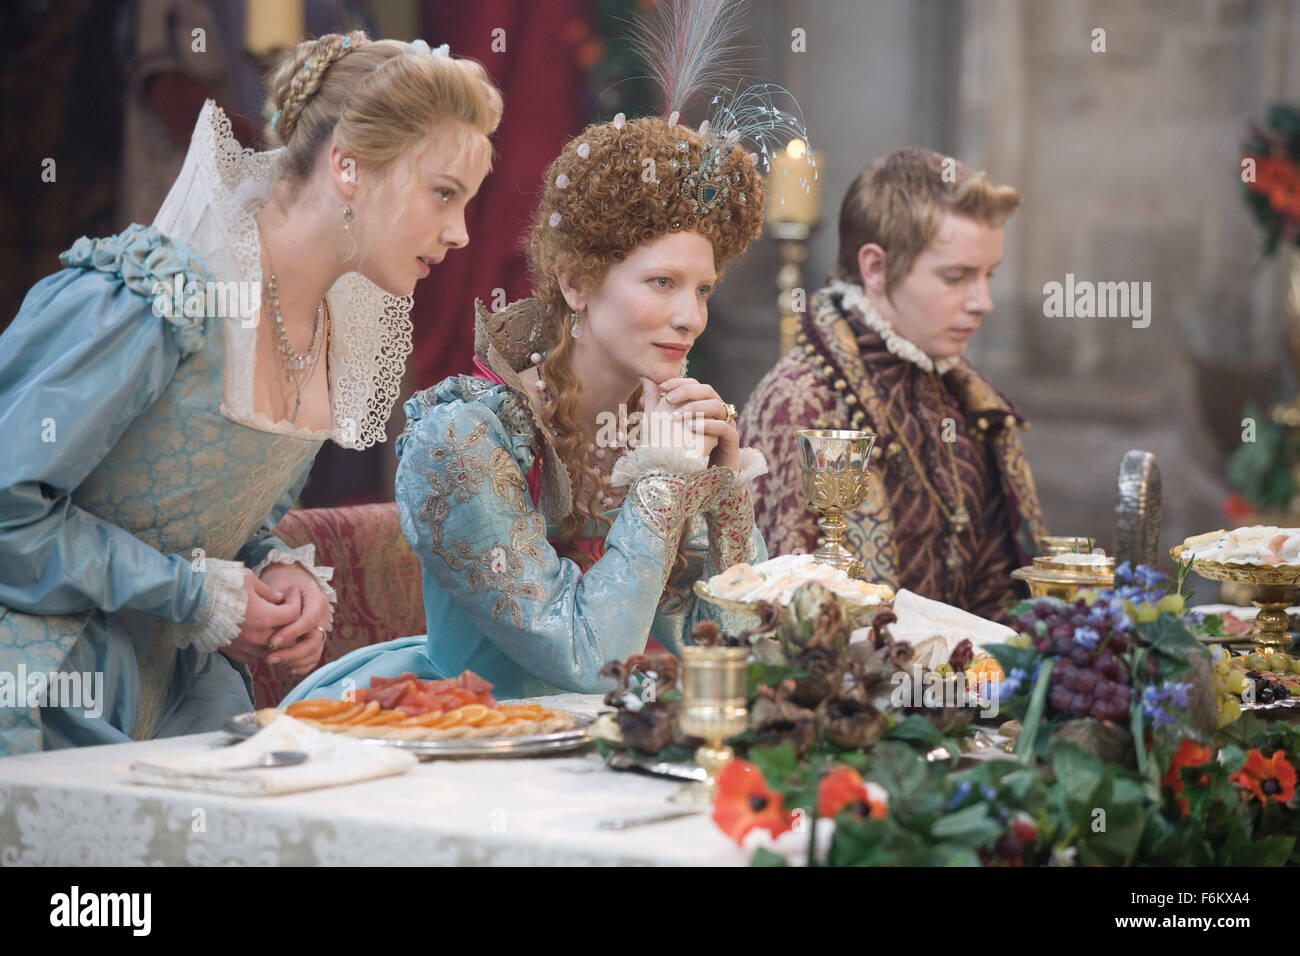 RELEASE DATE: October 12, 2007. MOVIE TITLE: Elizabeth: The Golden Age - STUDIO: Working Title Films/Universal Pictures. - Stock Image